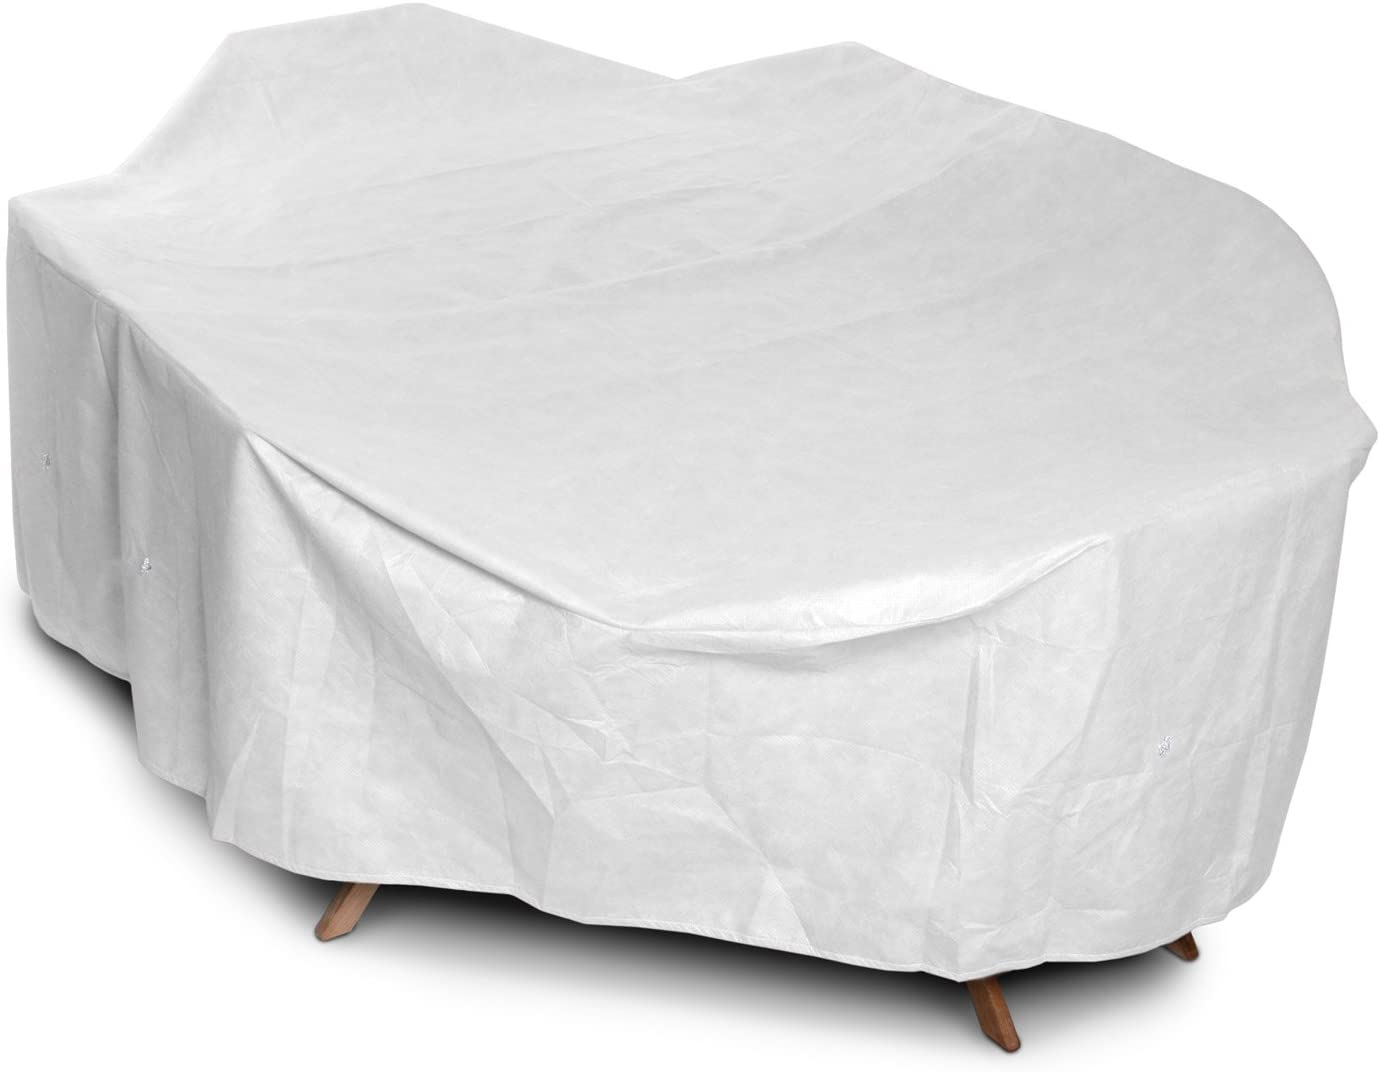 KoverRoos DuPont Tyvek Super beauty product restock quality top 29484 X-Large Set Dining Cover Columbus Mall Back High